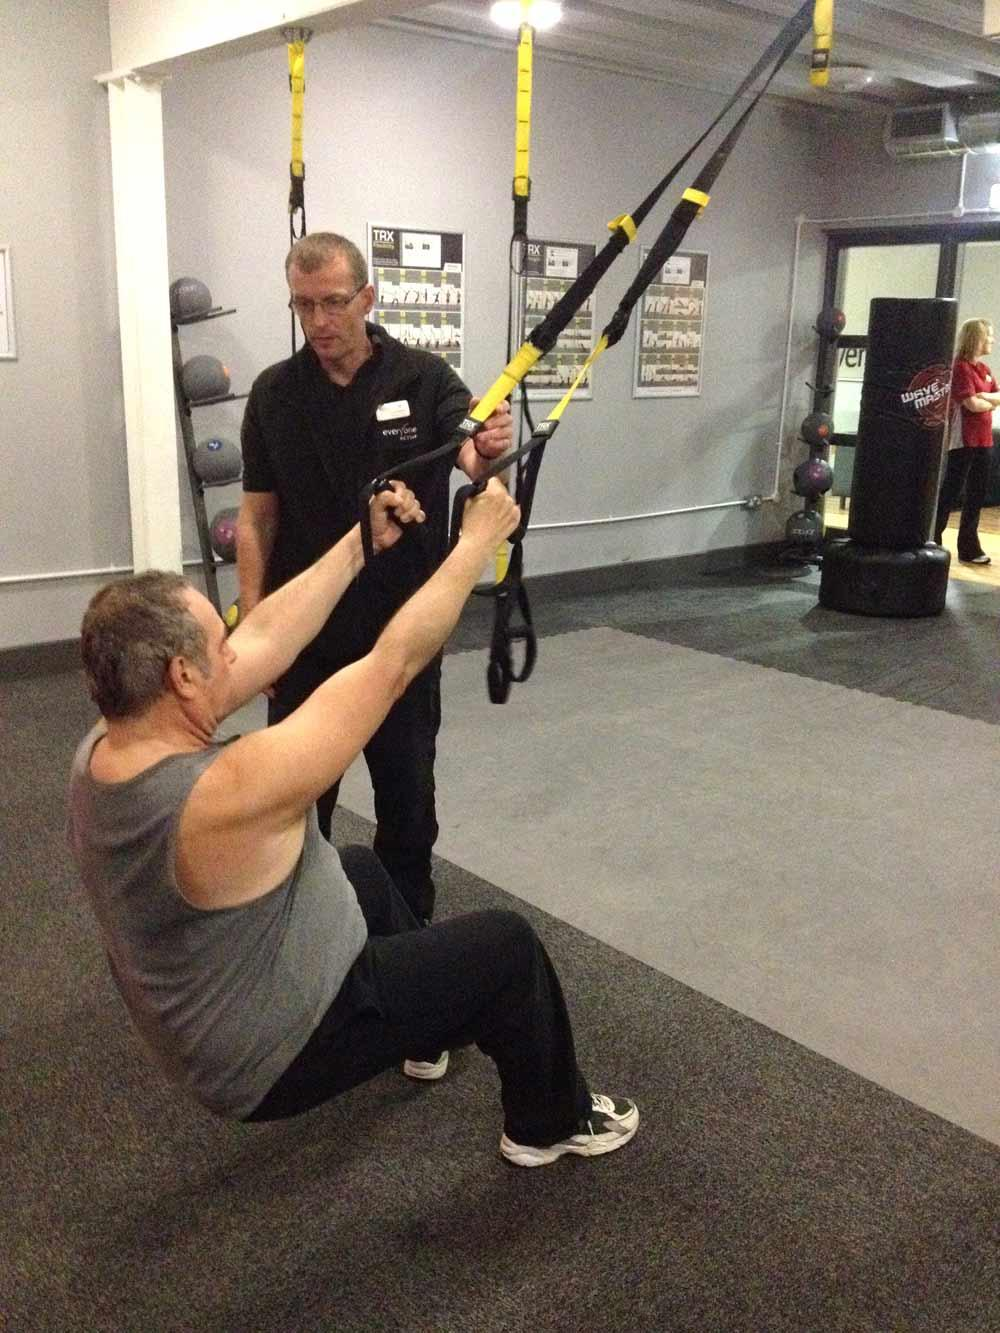 TRX has been used with severely deconditioned people at Fareham